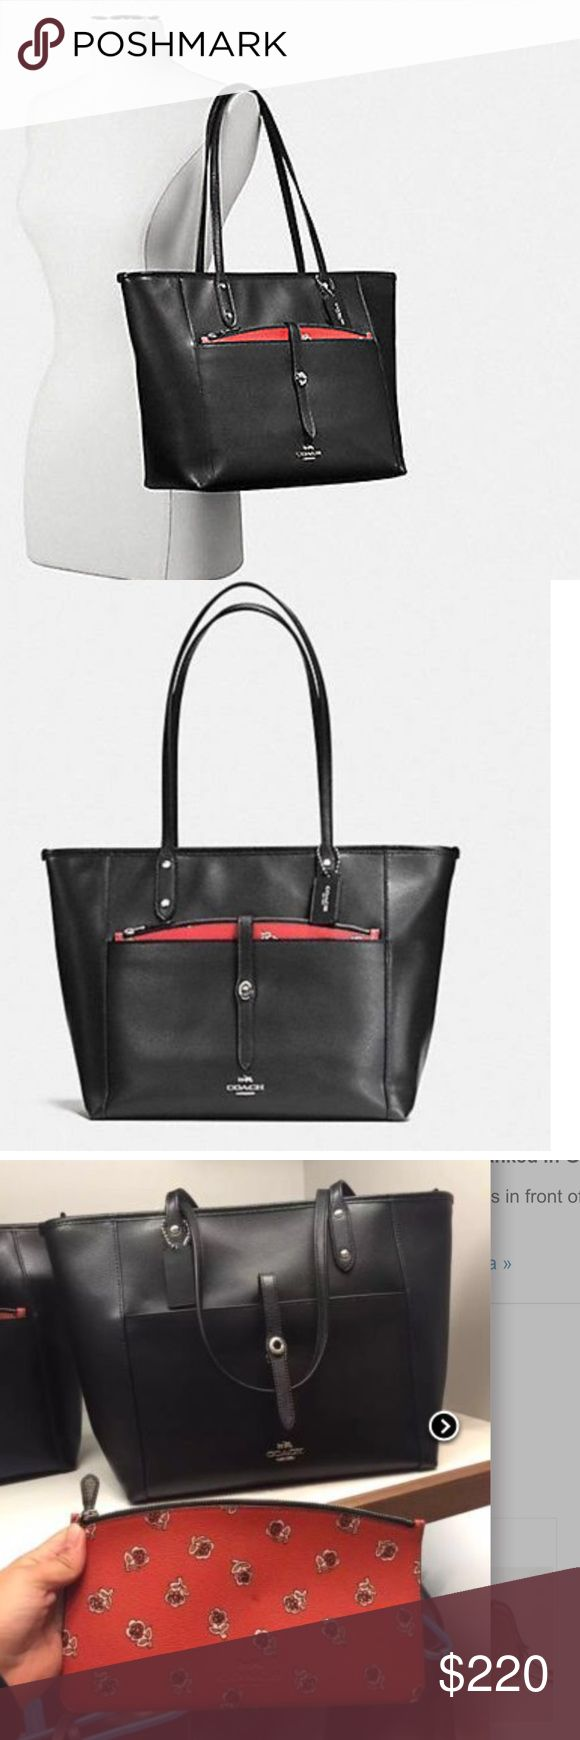 NEW COACH LEATHER BAG WITH POUCH $400 ORIGINAL New gorgeous coach bag with pouch. Great for everyday use and all year long. Bundle up and save Coach Bags Shoulder Bags